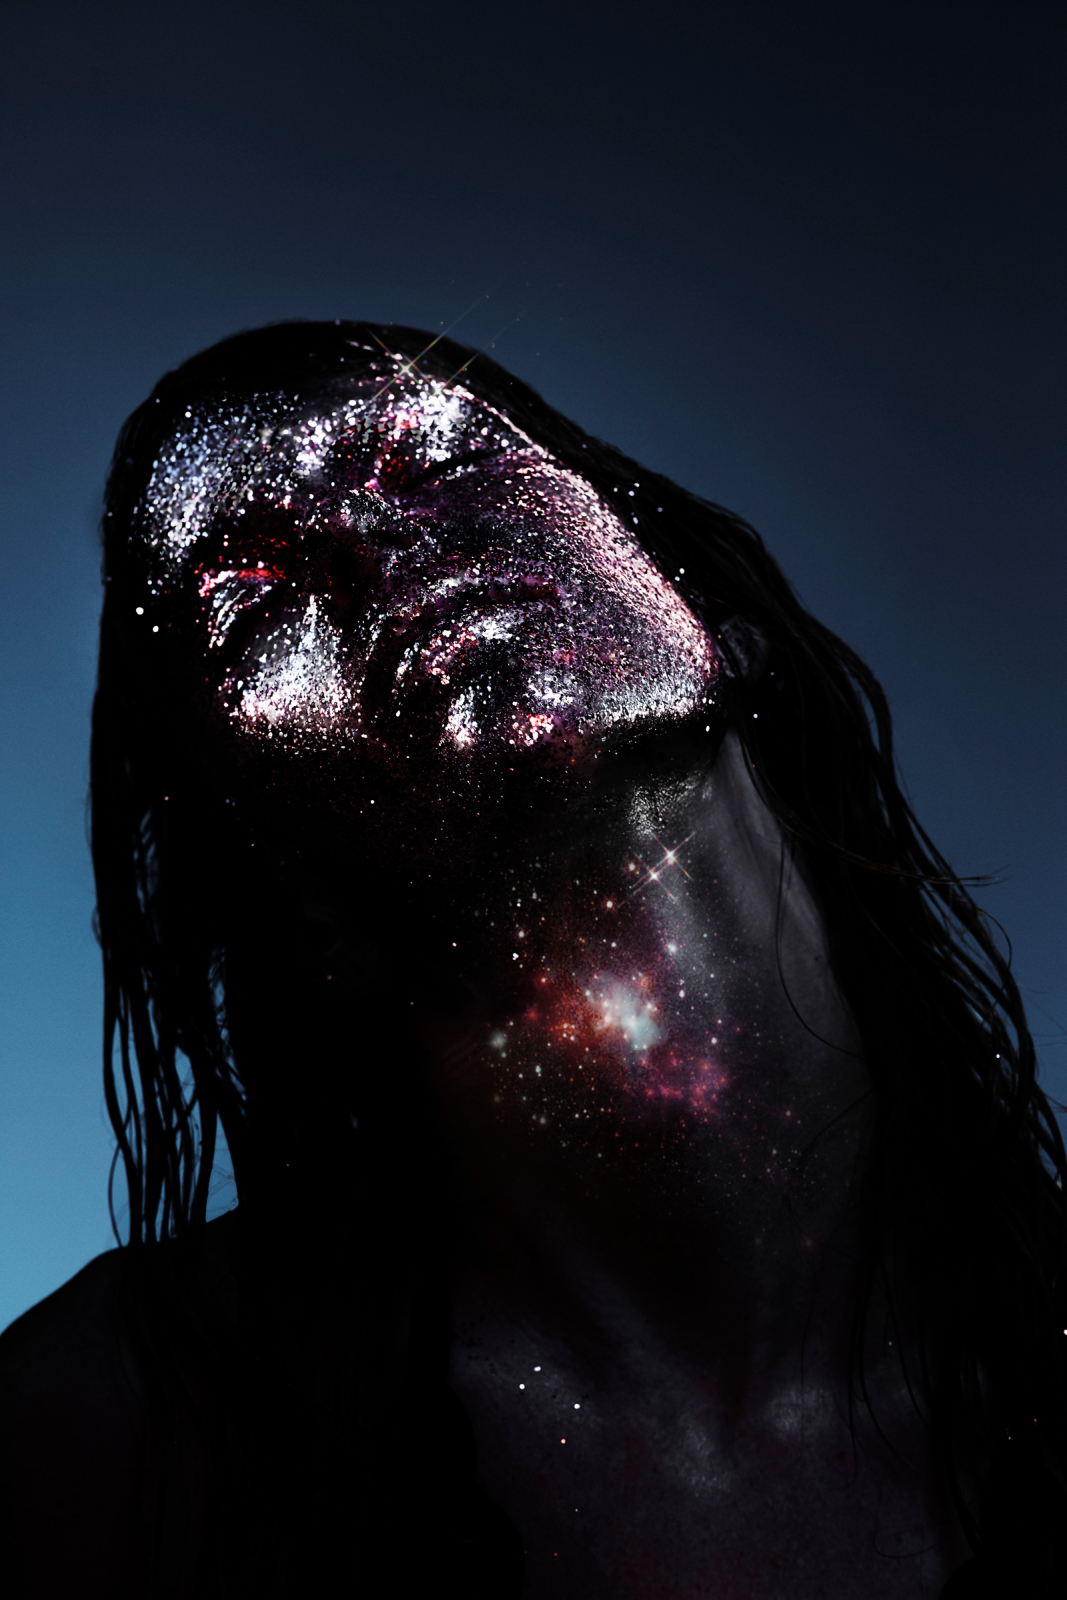 The 'cosmic' music album cover shot that led Tim Saccenti to win Beauty category in Spotlight Photo Awards